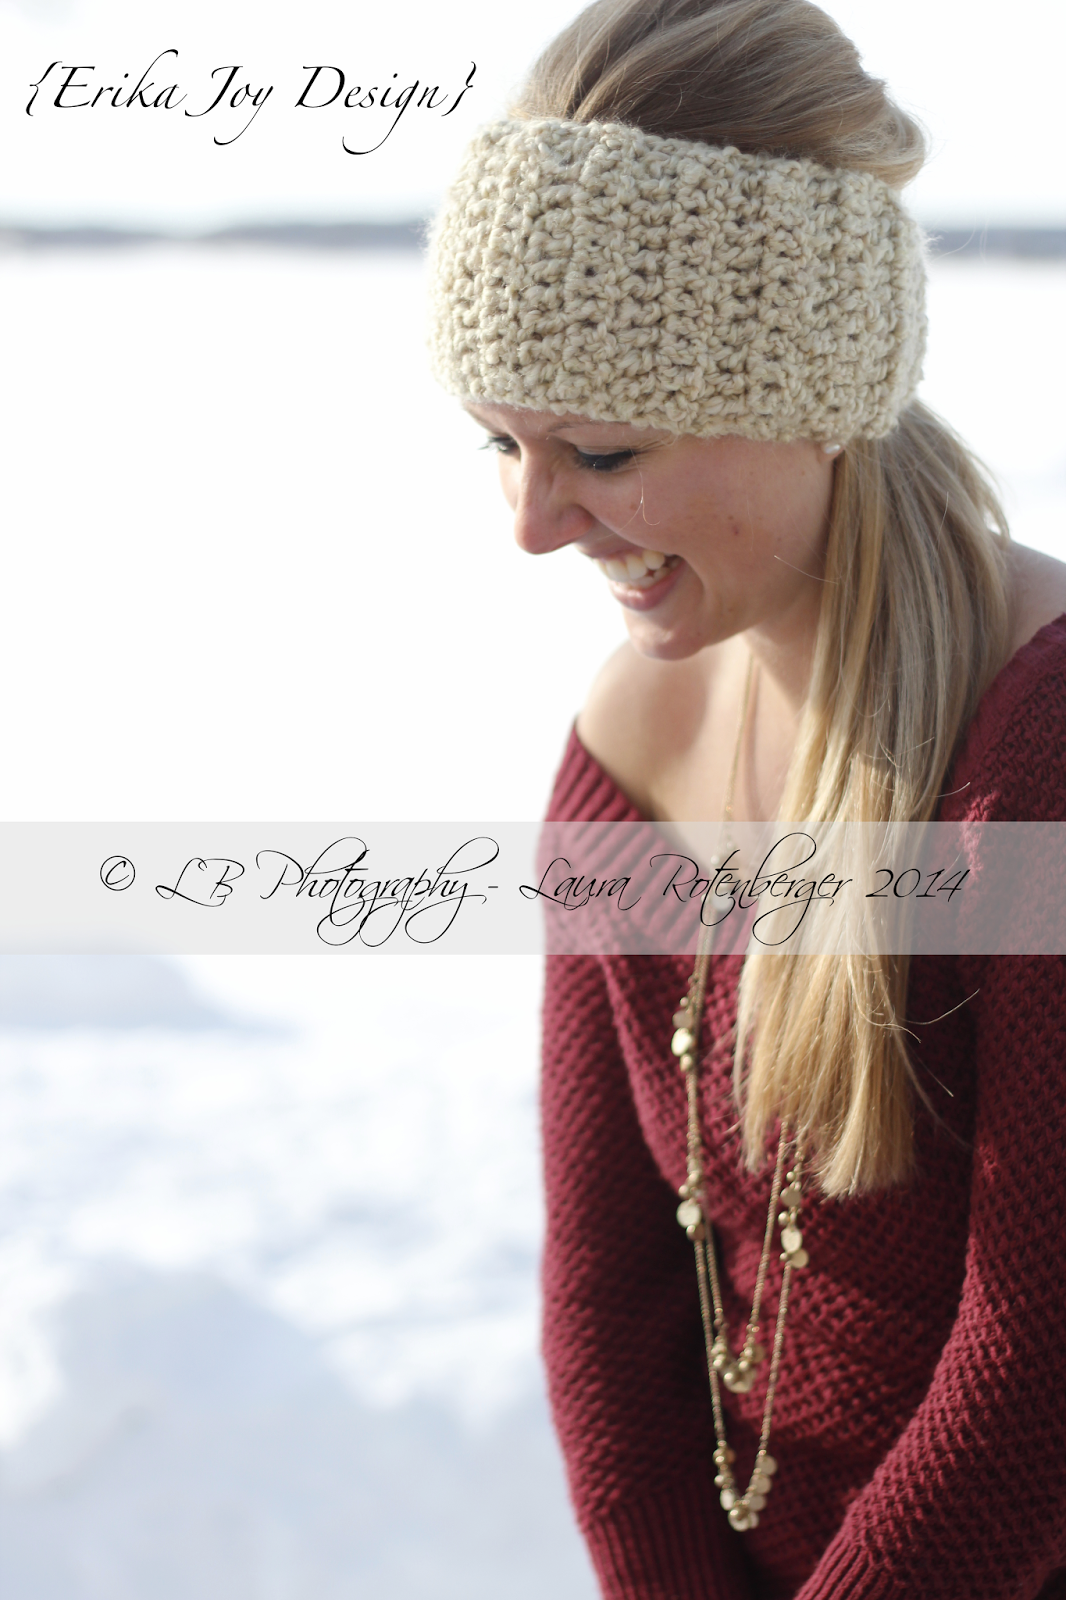 Crochet, Winter, LB Photography, Laughter